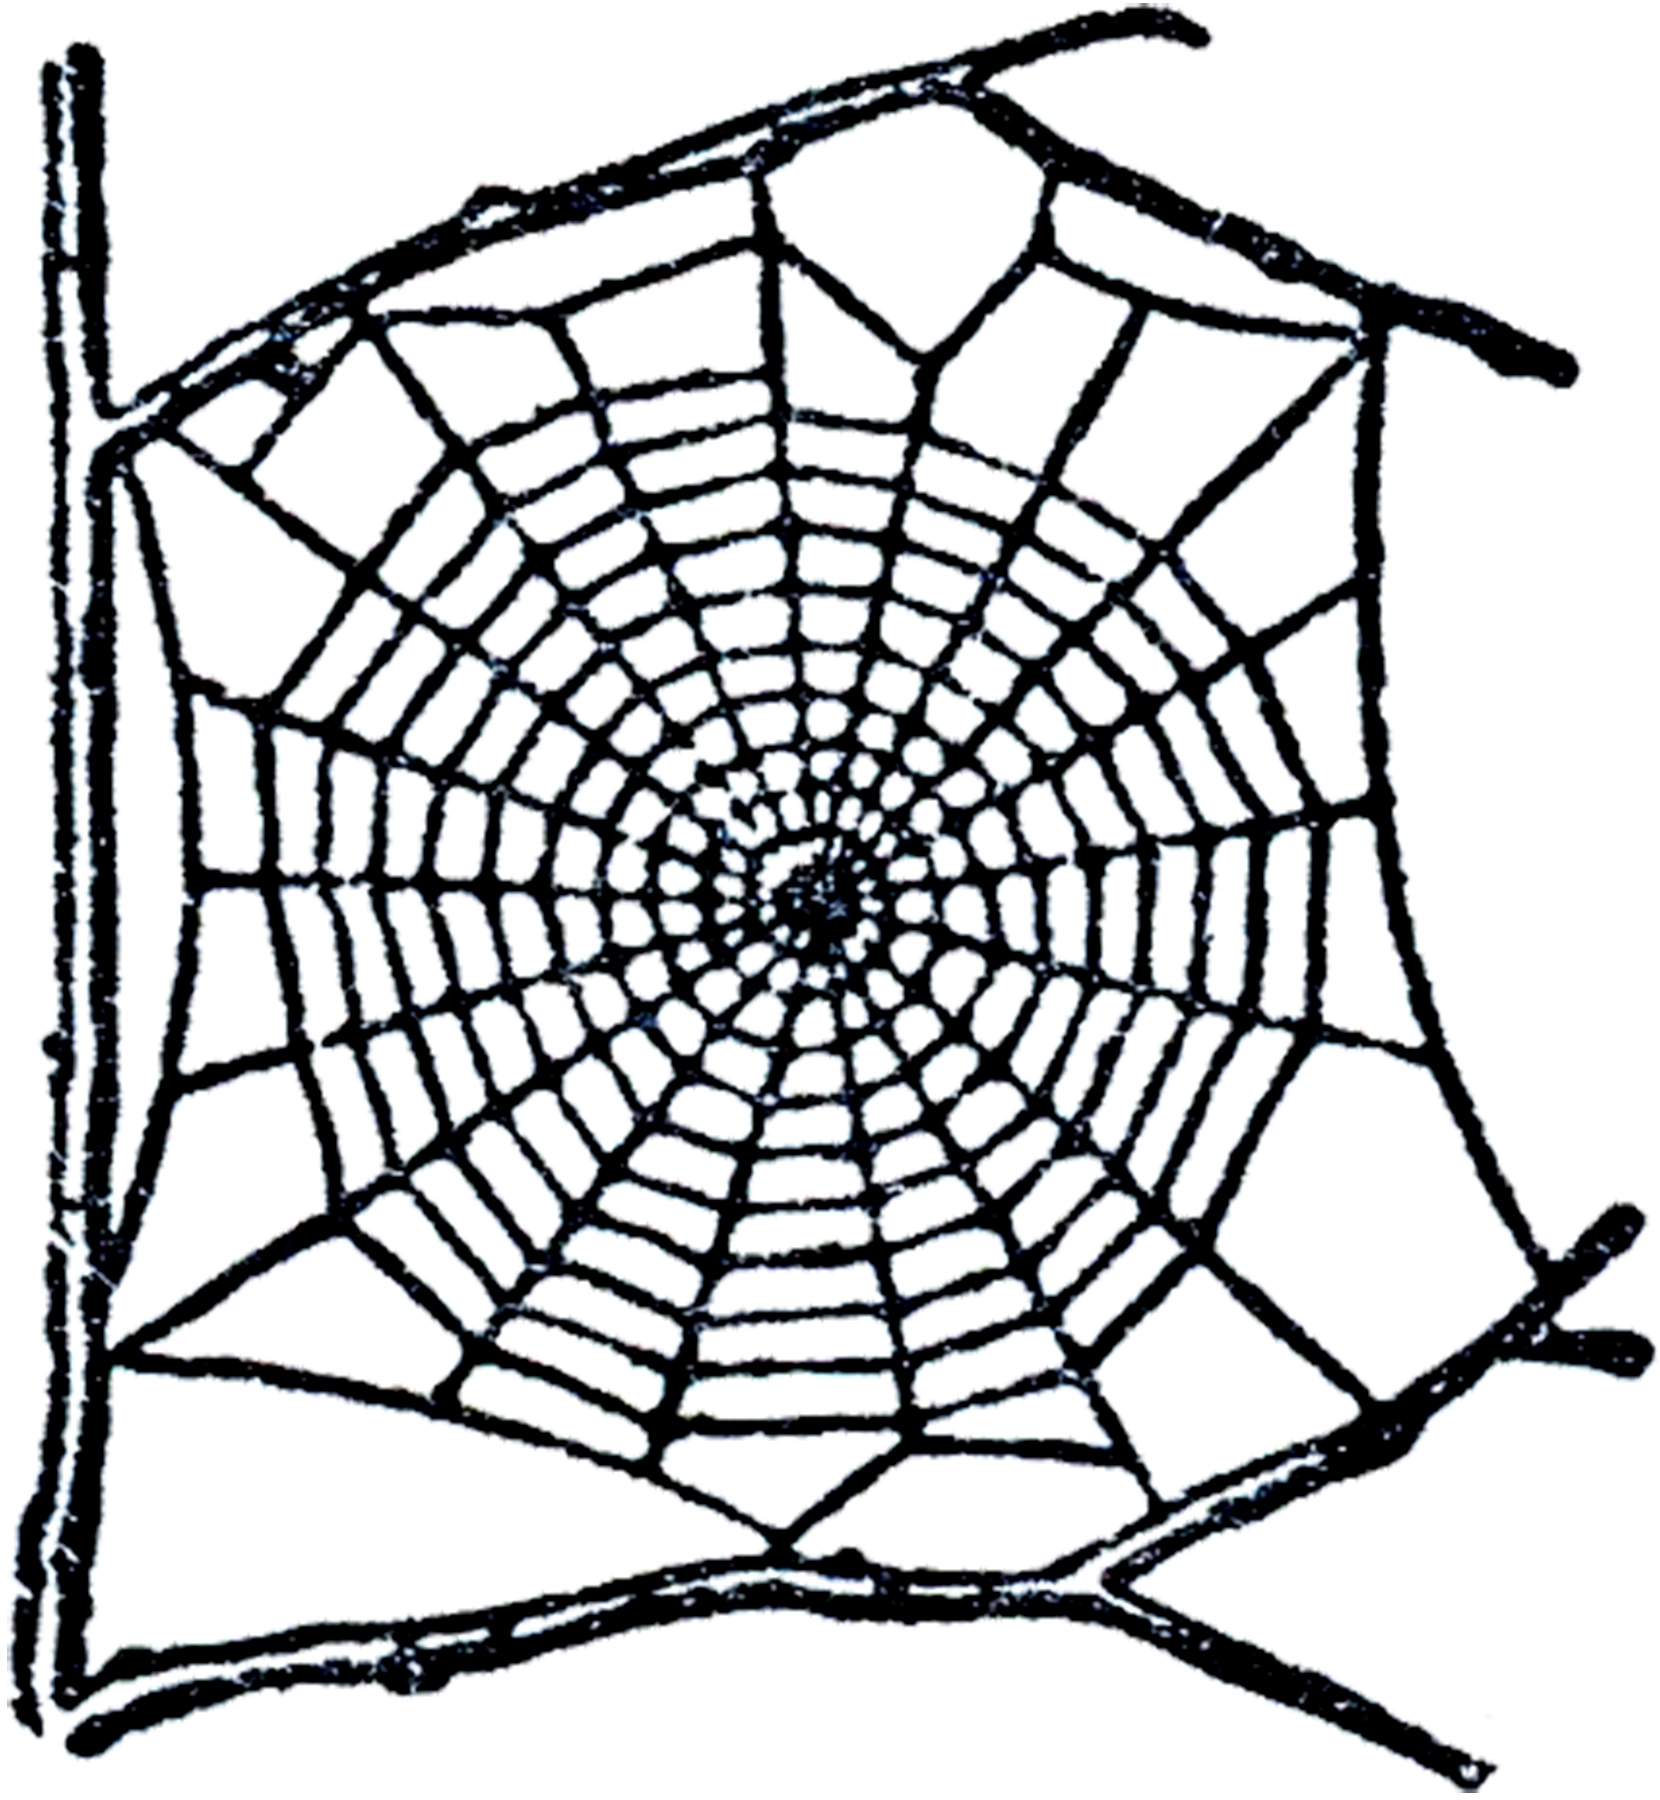 Spider web overlay clipart clipart freeuse Spiderweb Borders | Free download best Spiderweb Borders on ... clipart freeuse